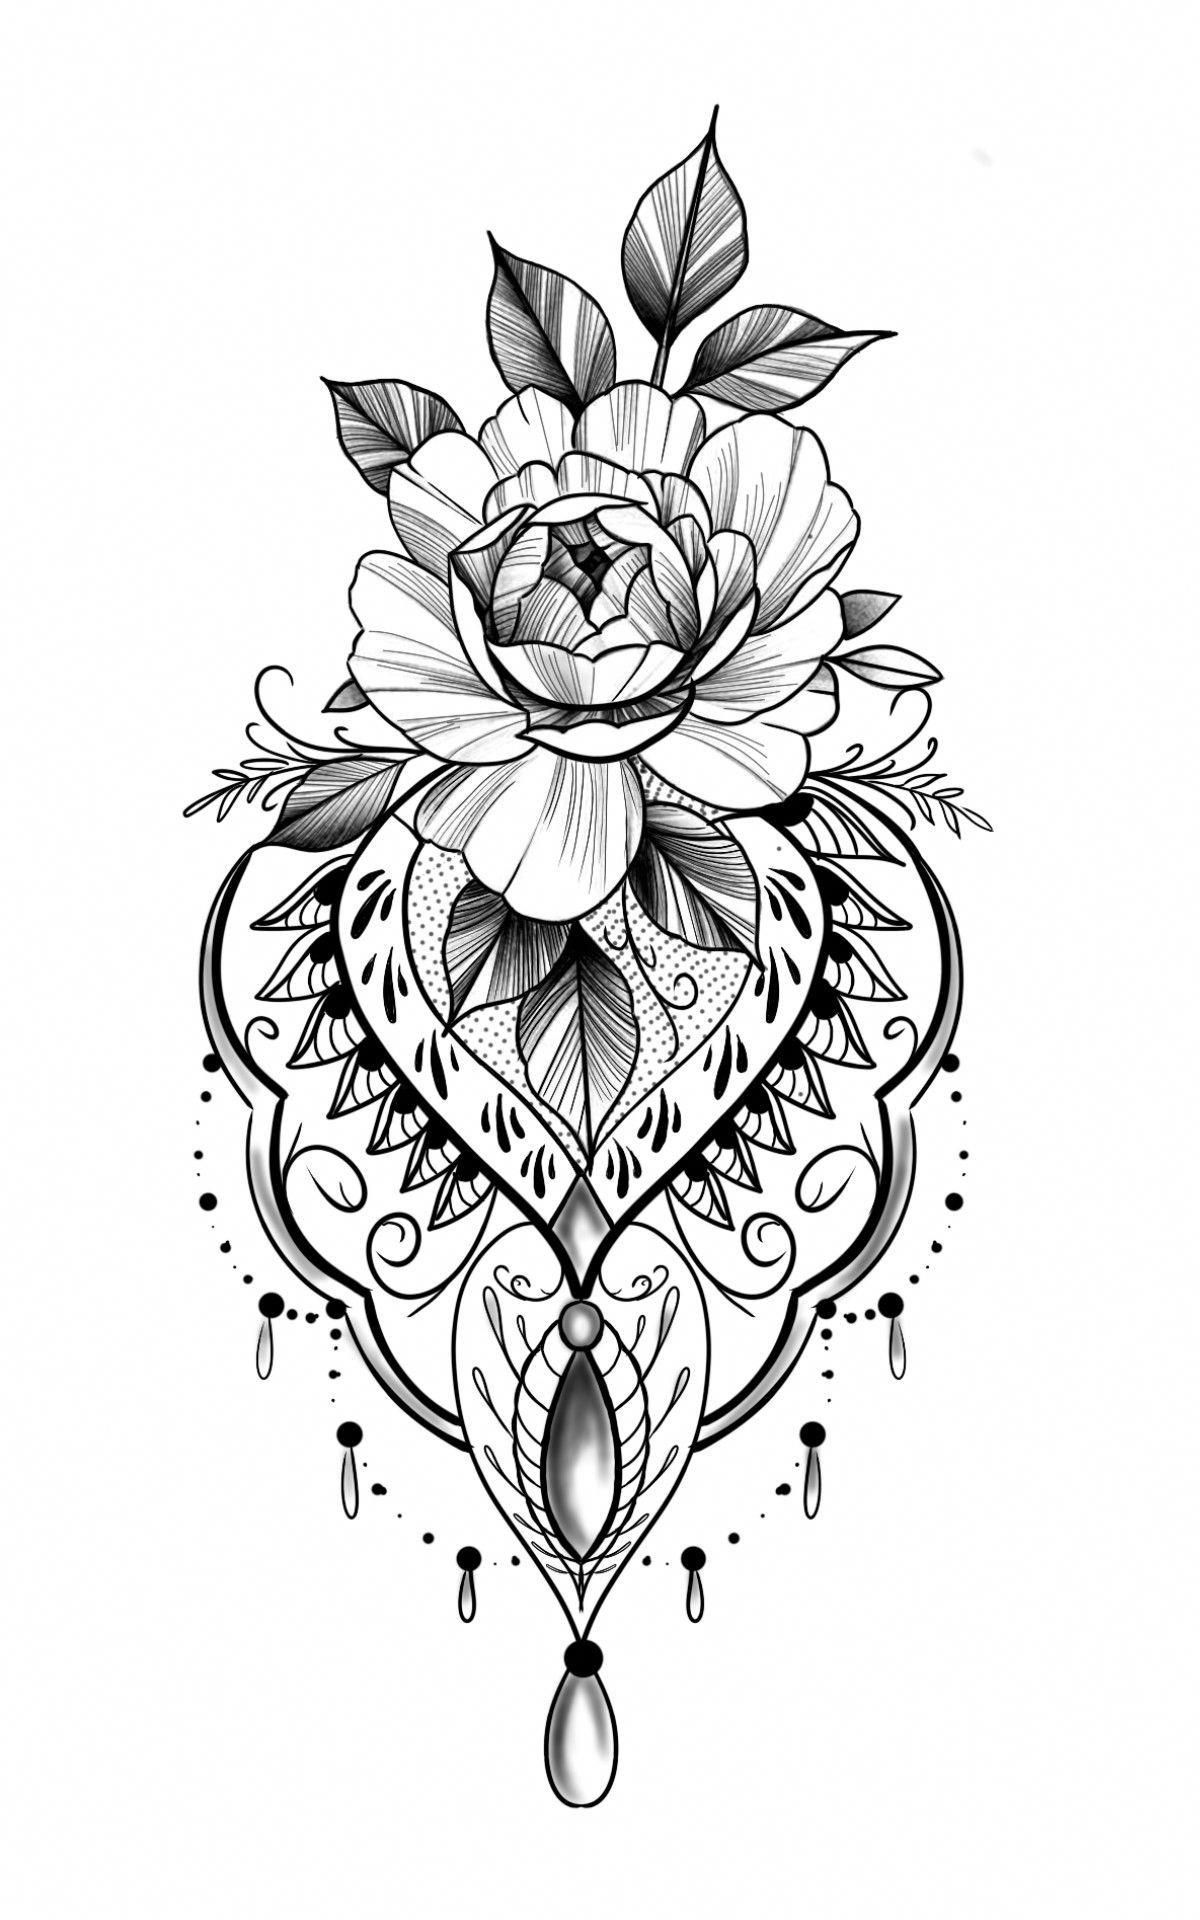 You Can Enjoy Tattoo Design With These Helpful Suggestions Tattoodesign In 2020 Mandala Tattoo Design Tattoos For Guys Tattoos See more ideas about redneck tattoos, tattoo templates, redneck. pinterest